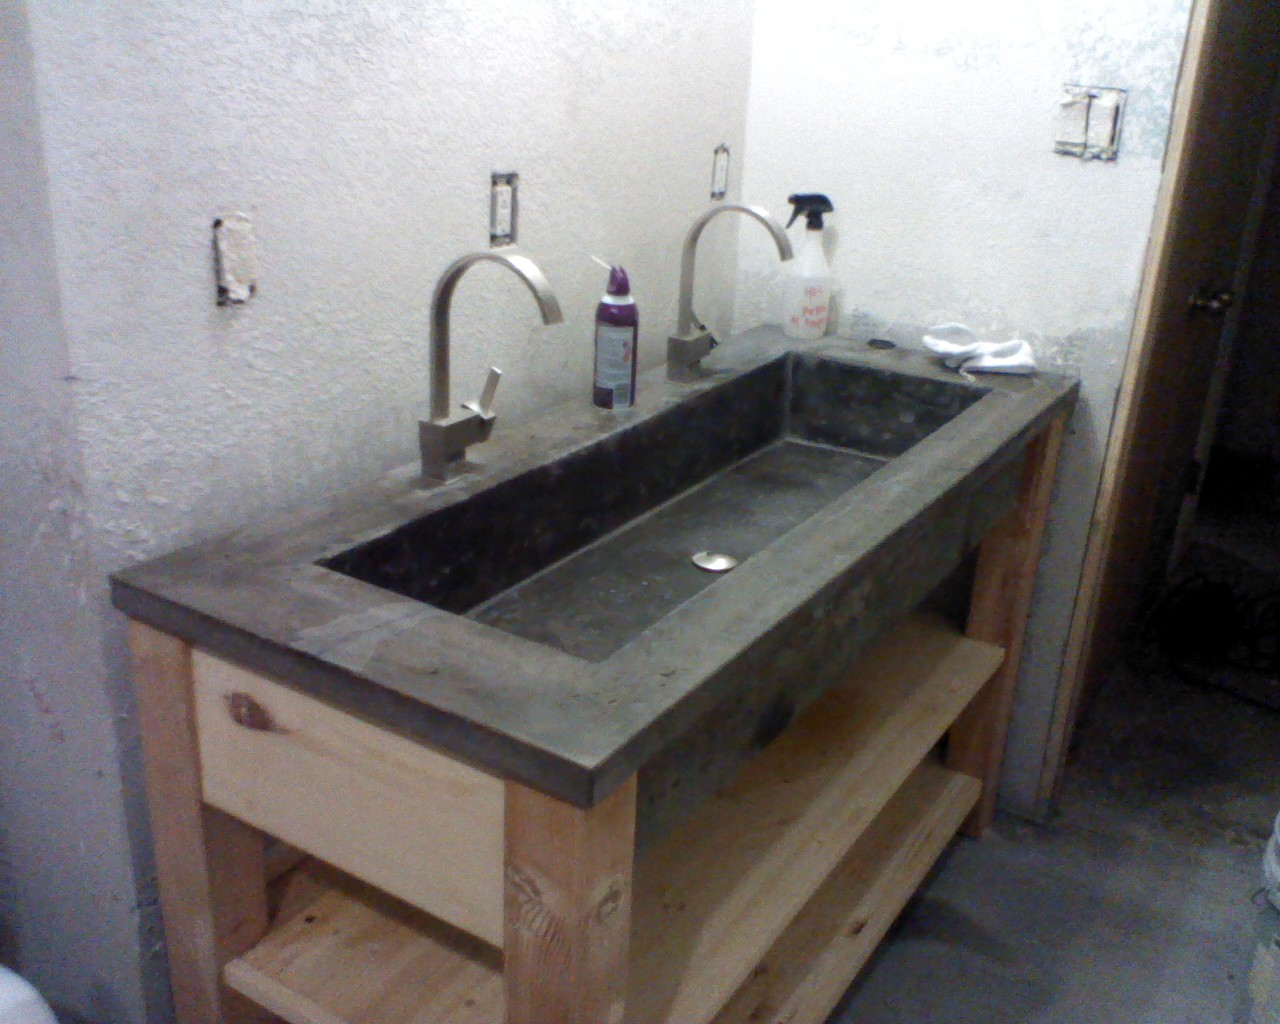 Concrete Sink : Concrete sink Crab Remodeling